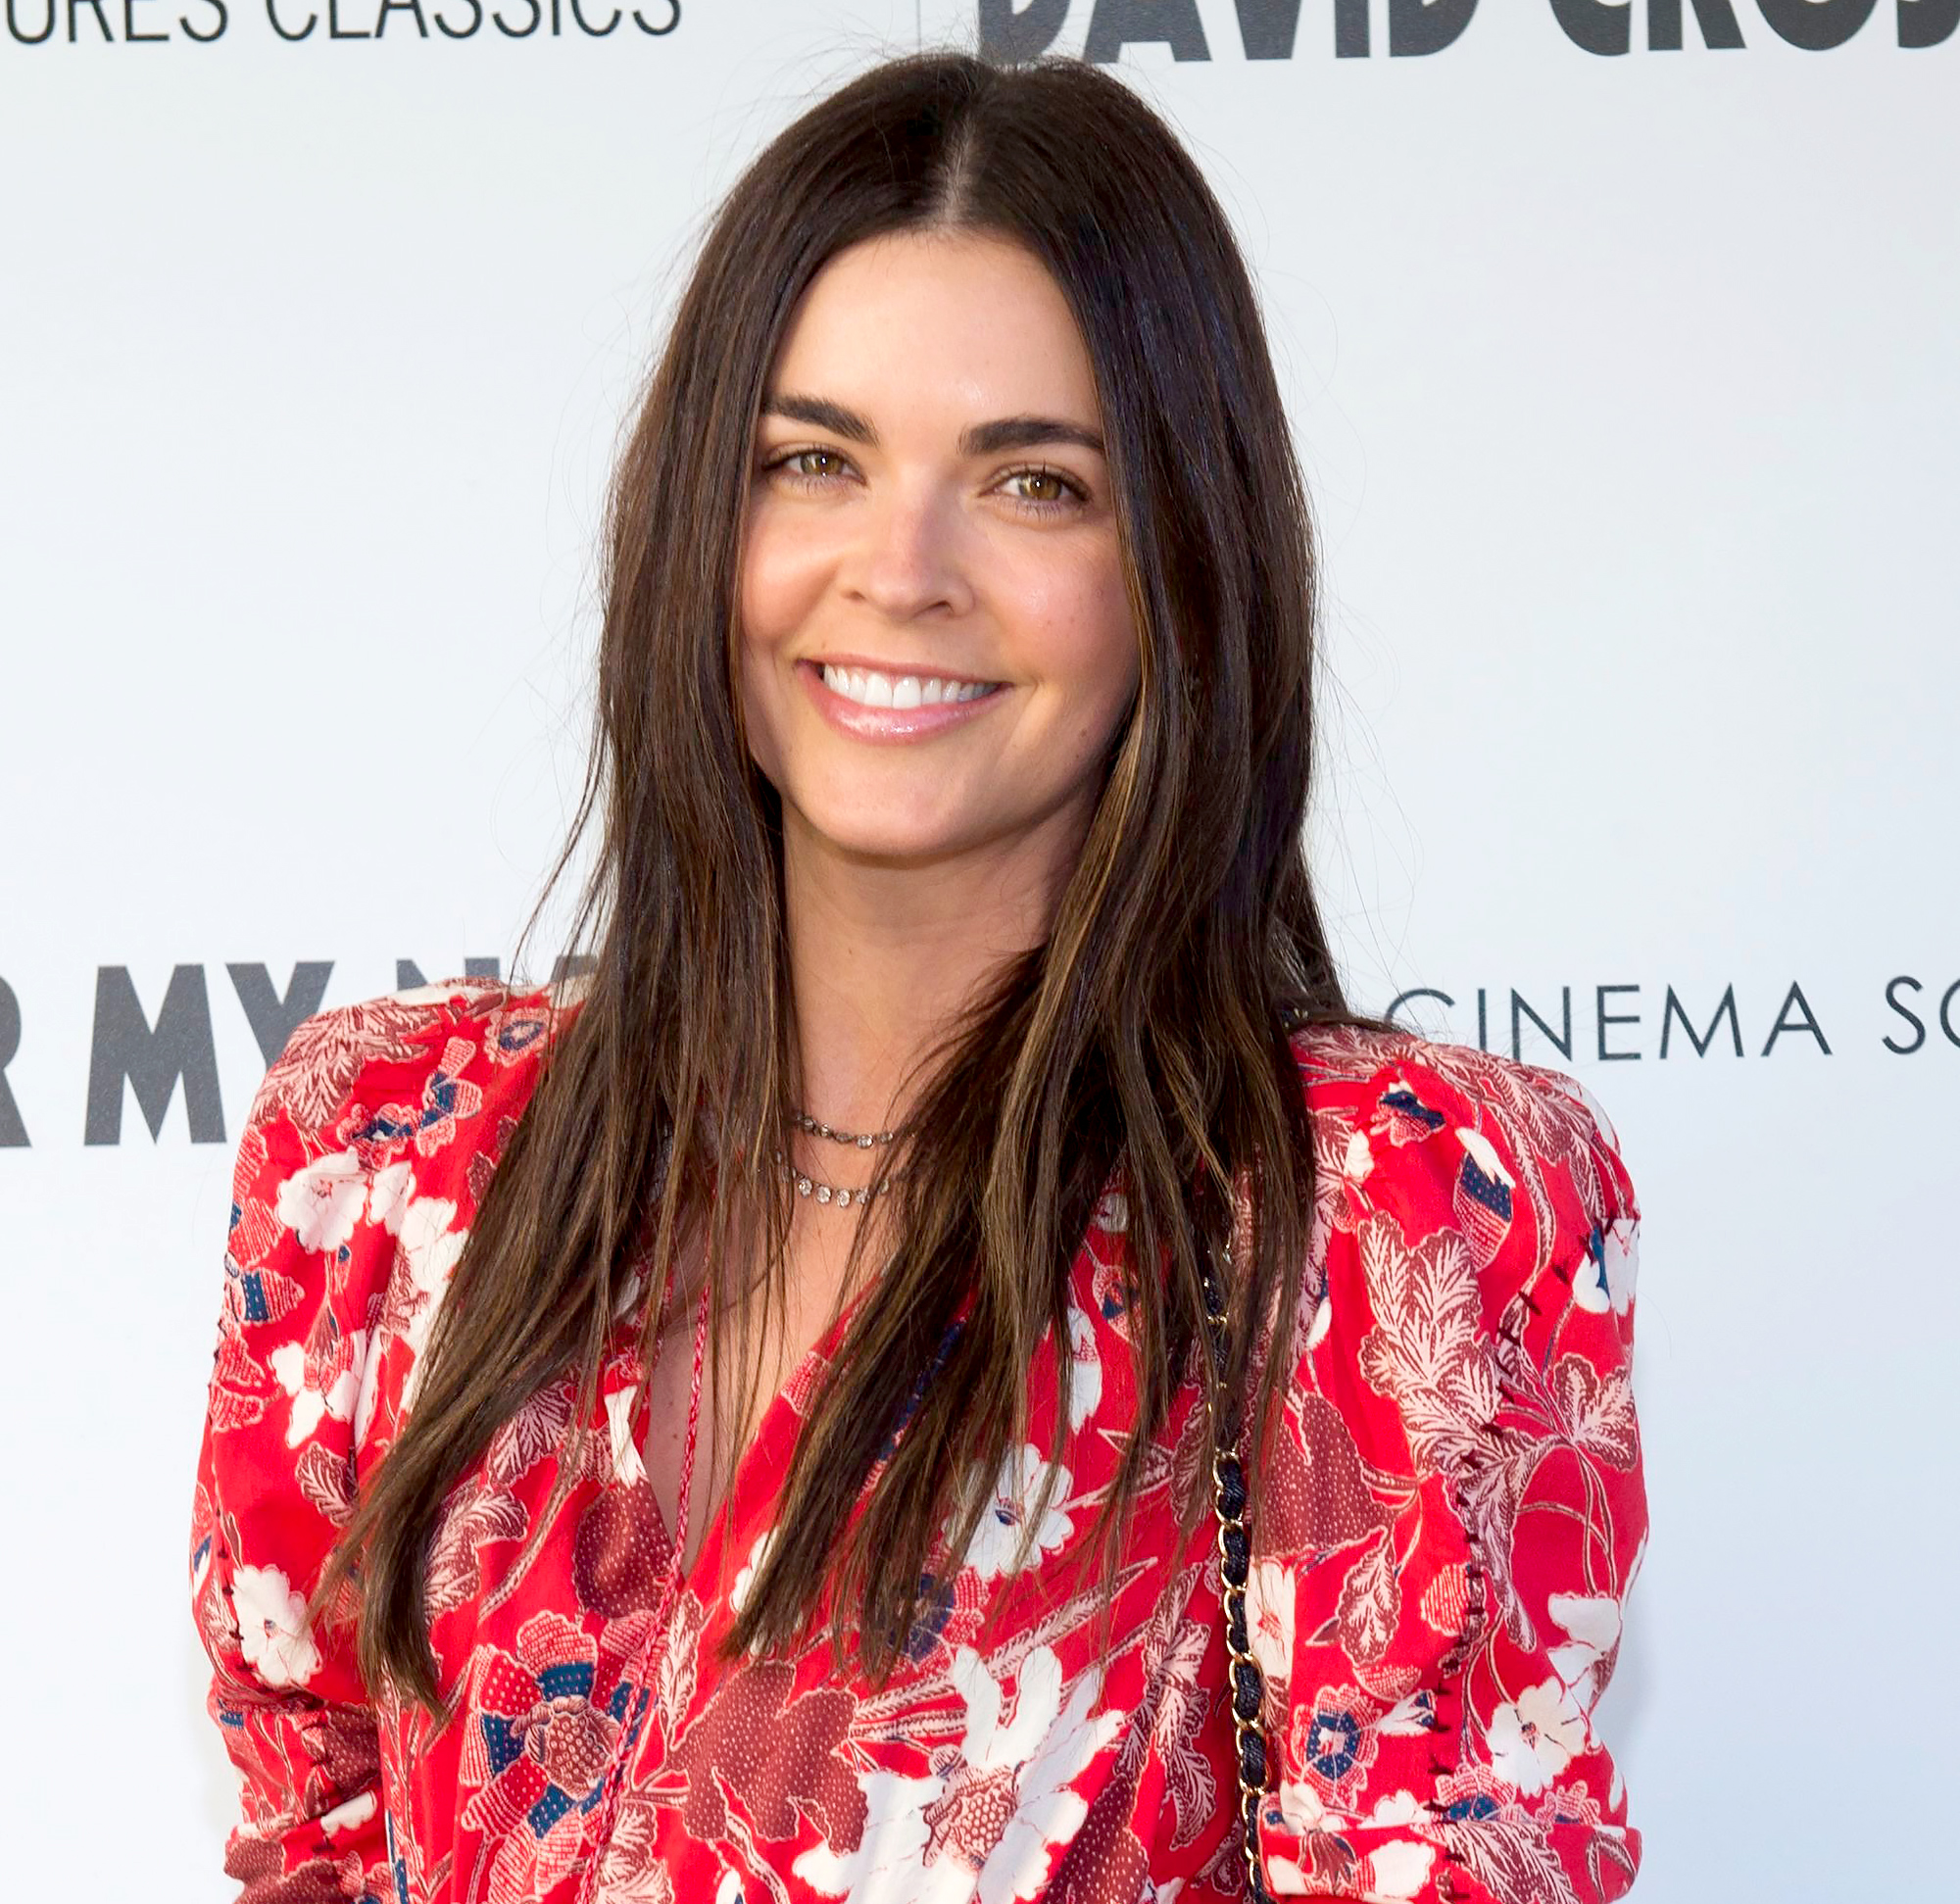 Pregnant Katie Lee Explains Why It Was Important for Her to Share Infertility Struggles 2